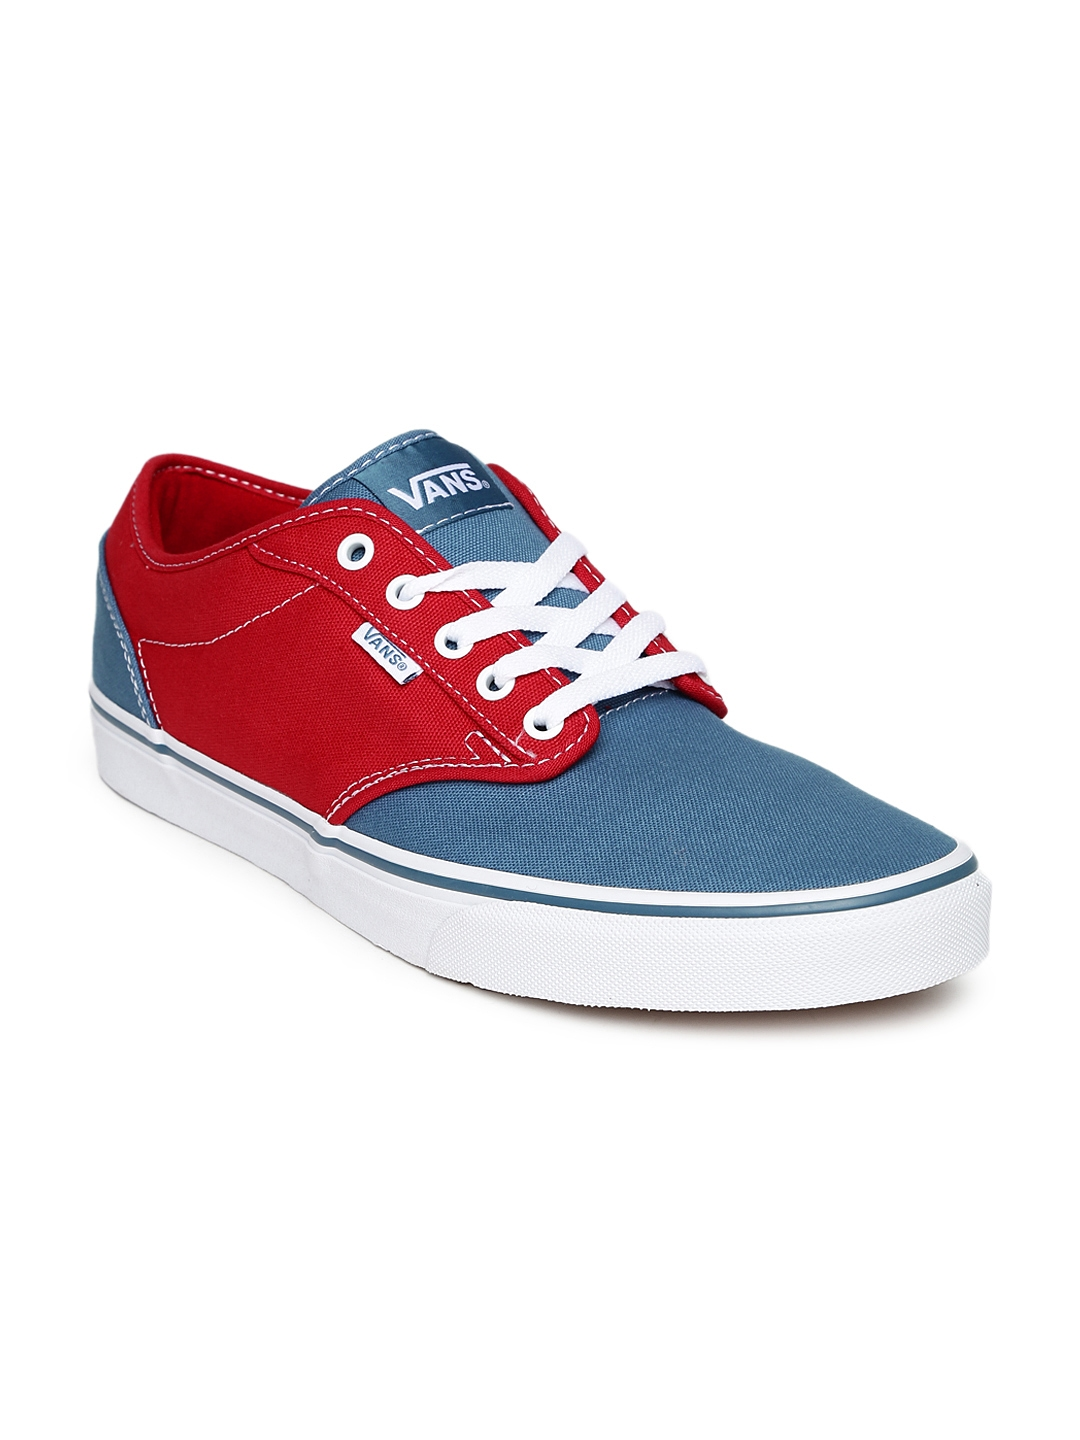 b8612363a5b Buy Vans Men Red   Blue Atwood Casual Shoes - Casual Shoes for Men ...